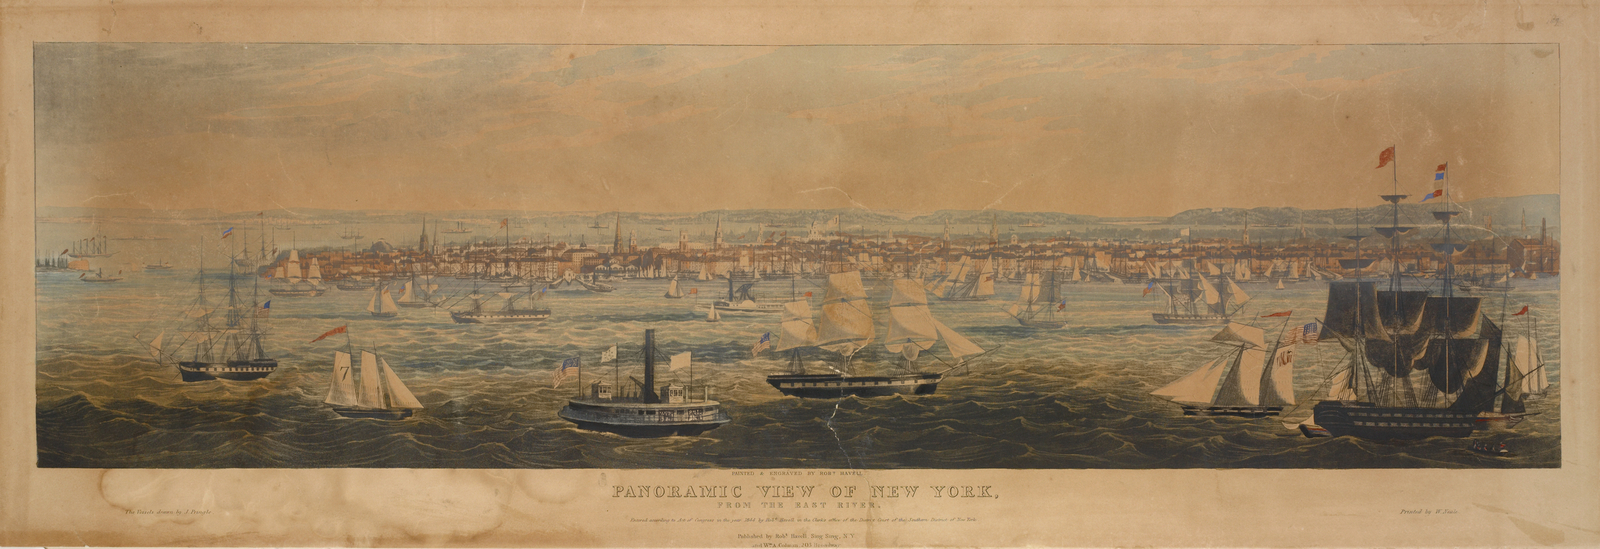 Panoramic view of New York, from the East River